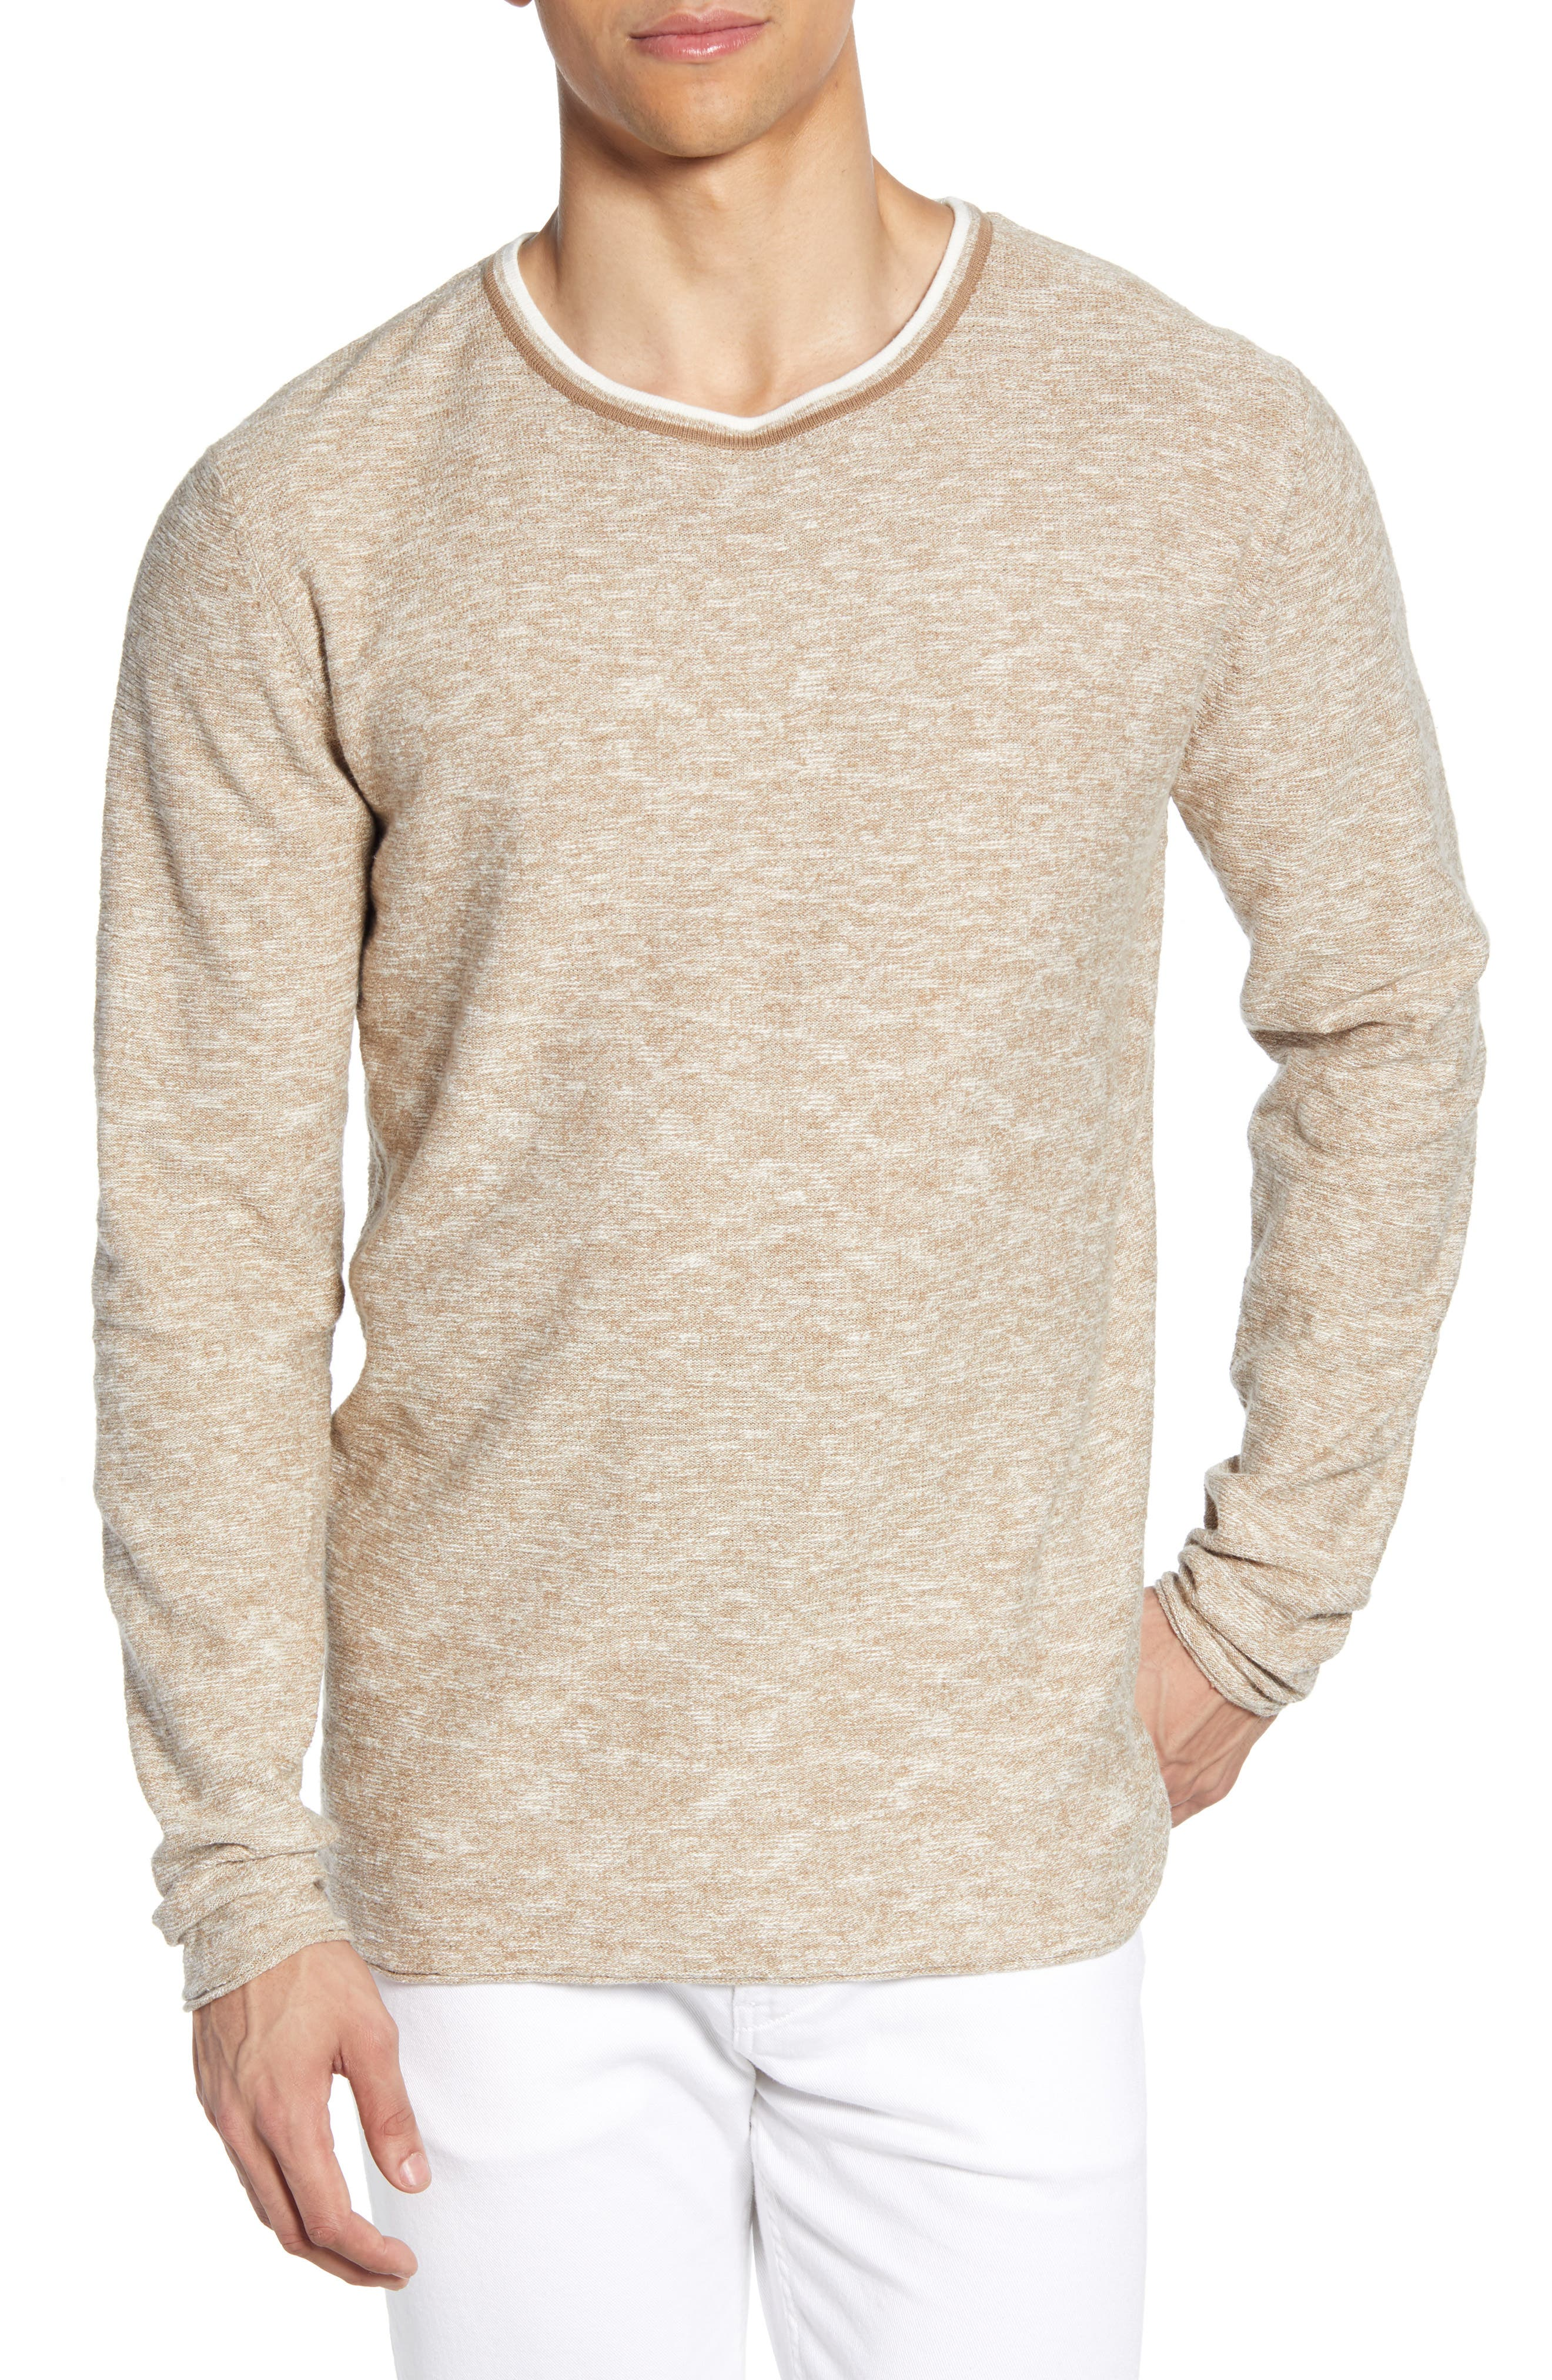 Selected Homme Clash Slim Fit Linen Blend Sweater, Brown